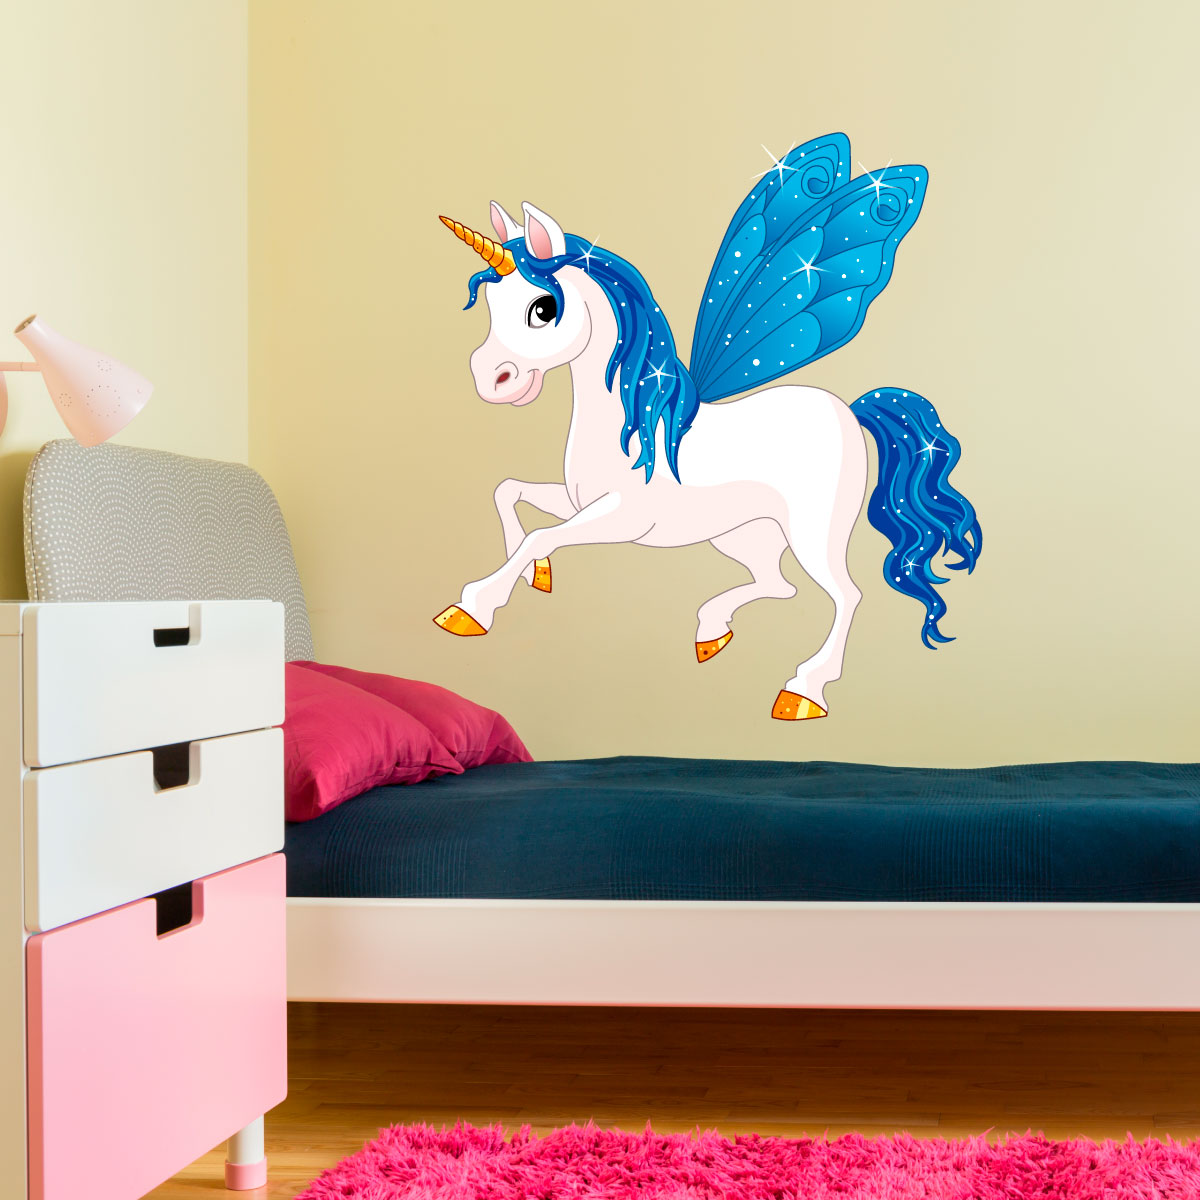 Idee Deco Chambre Garcon Super Heros fairy unicorn wall decal